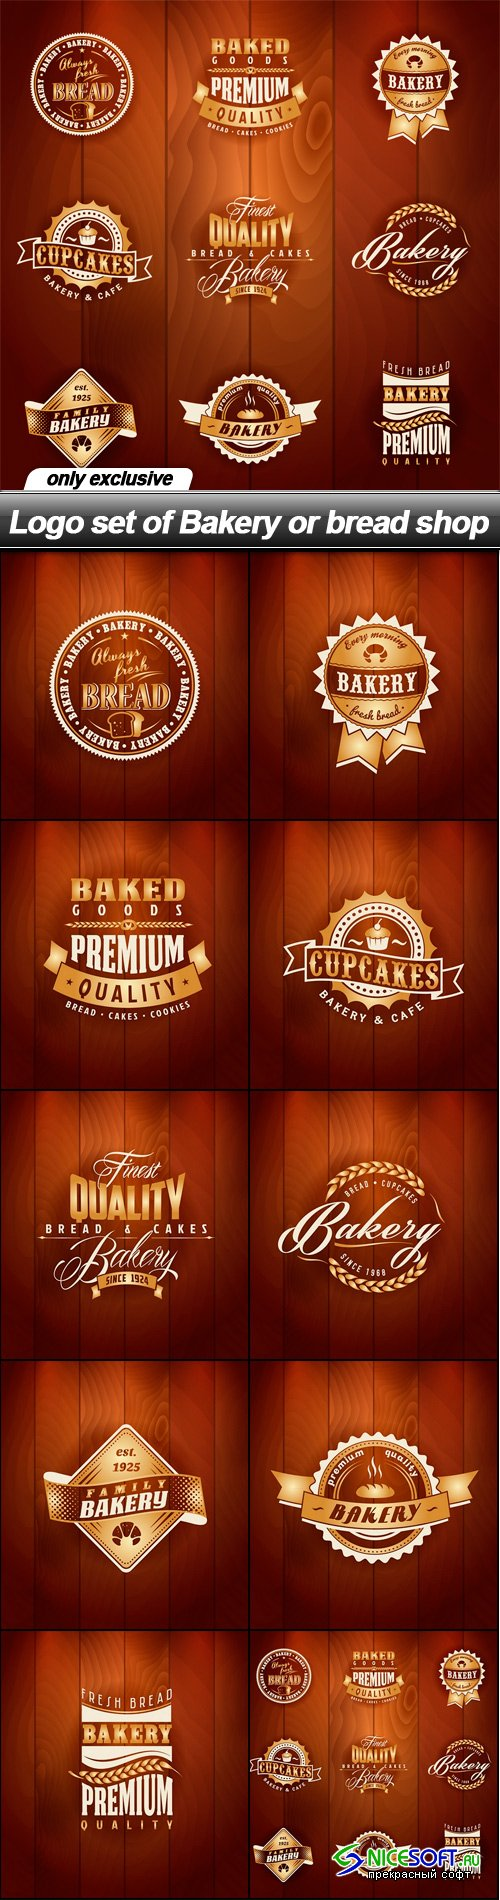 Logo set of Bakery or bread shop